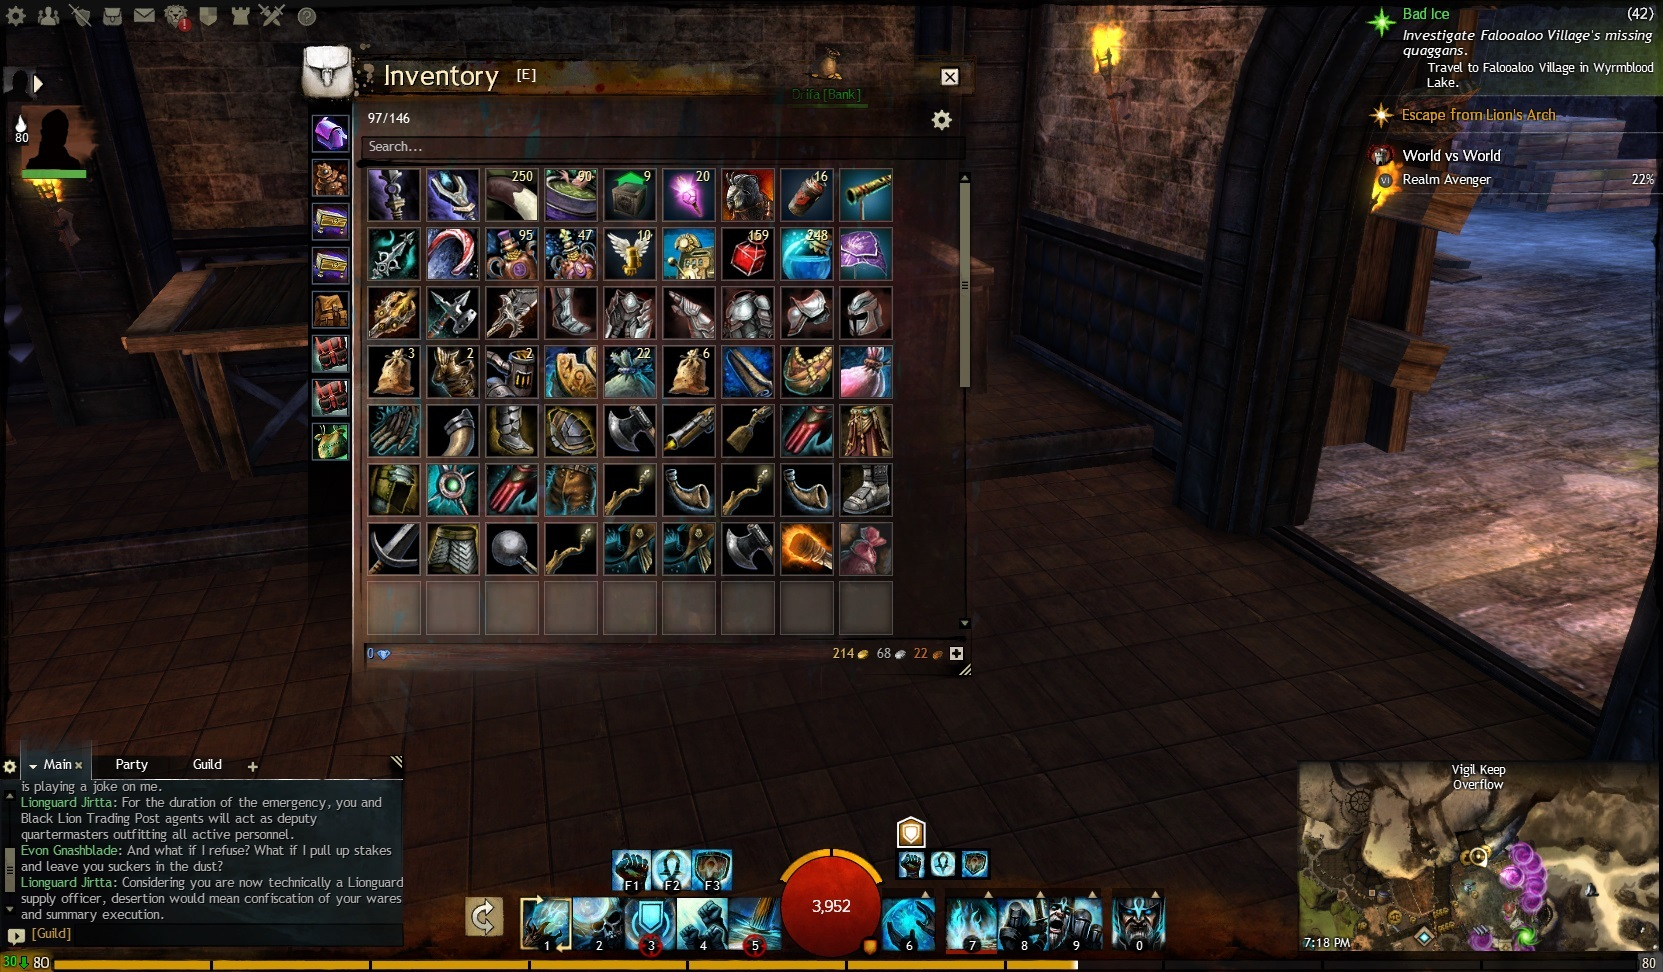 Inventory slots gw2 : Can you play online poker in nj